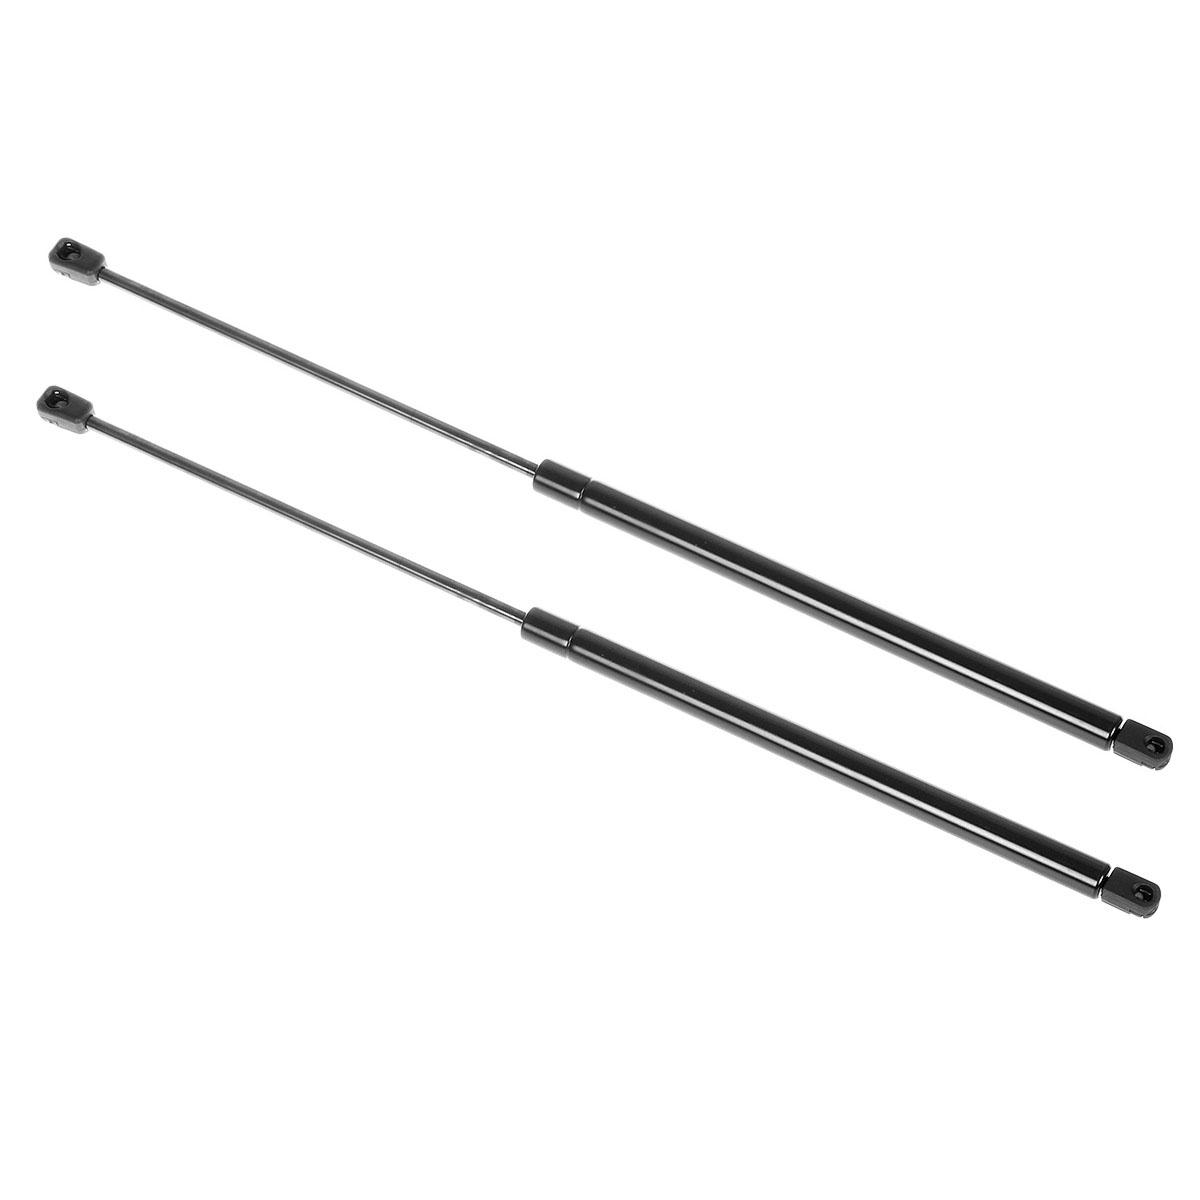 Qty 2 Front Hood Gas Charged Lift Support Struts For Ford Taurus